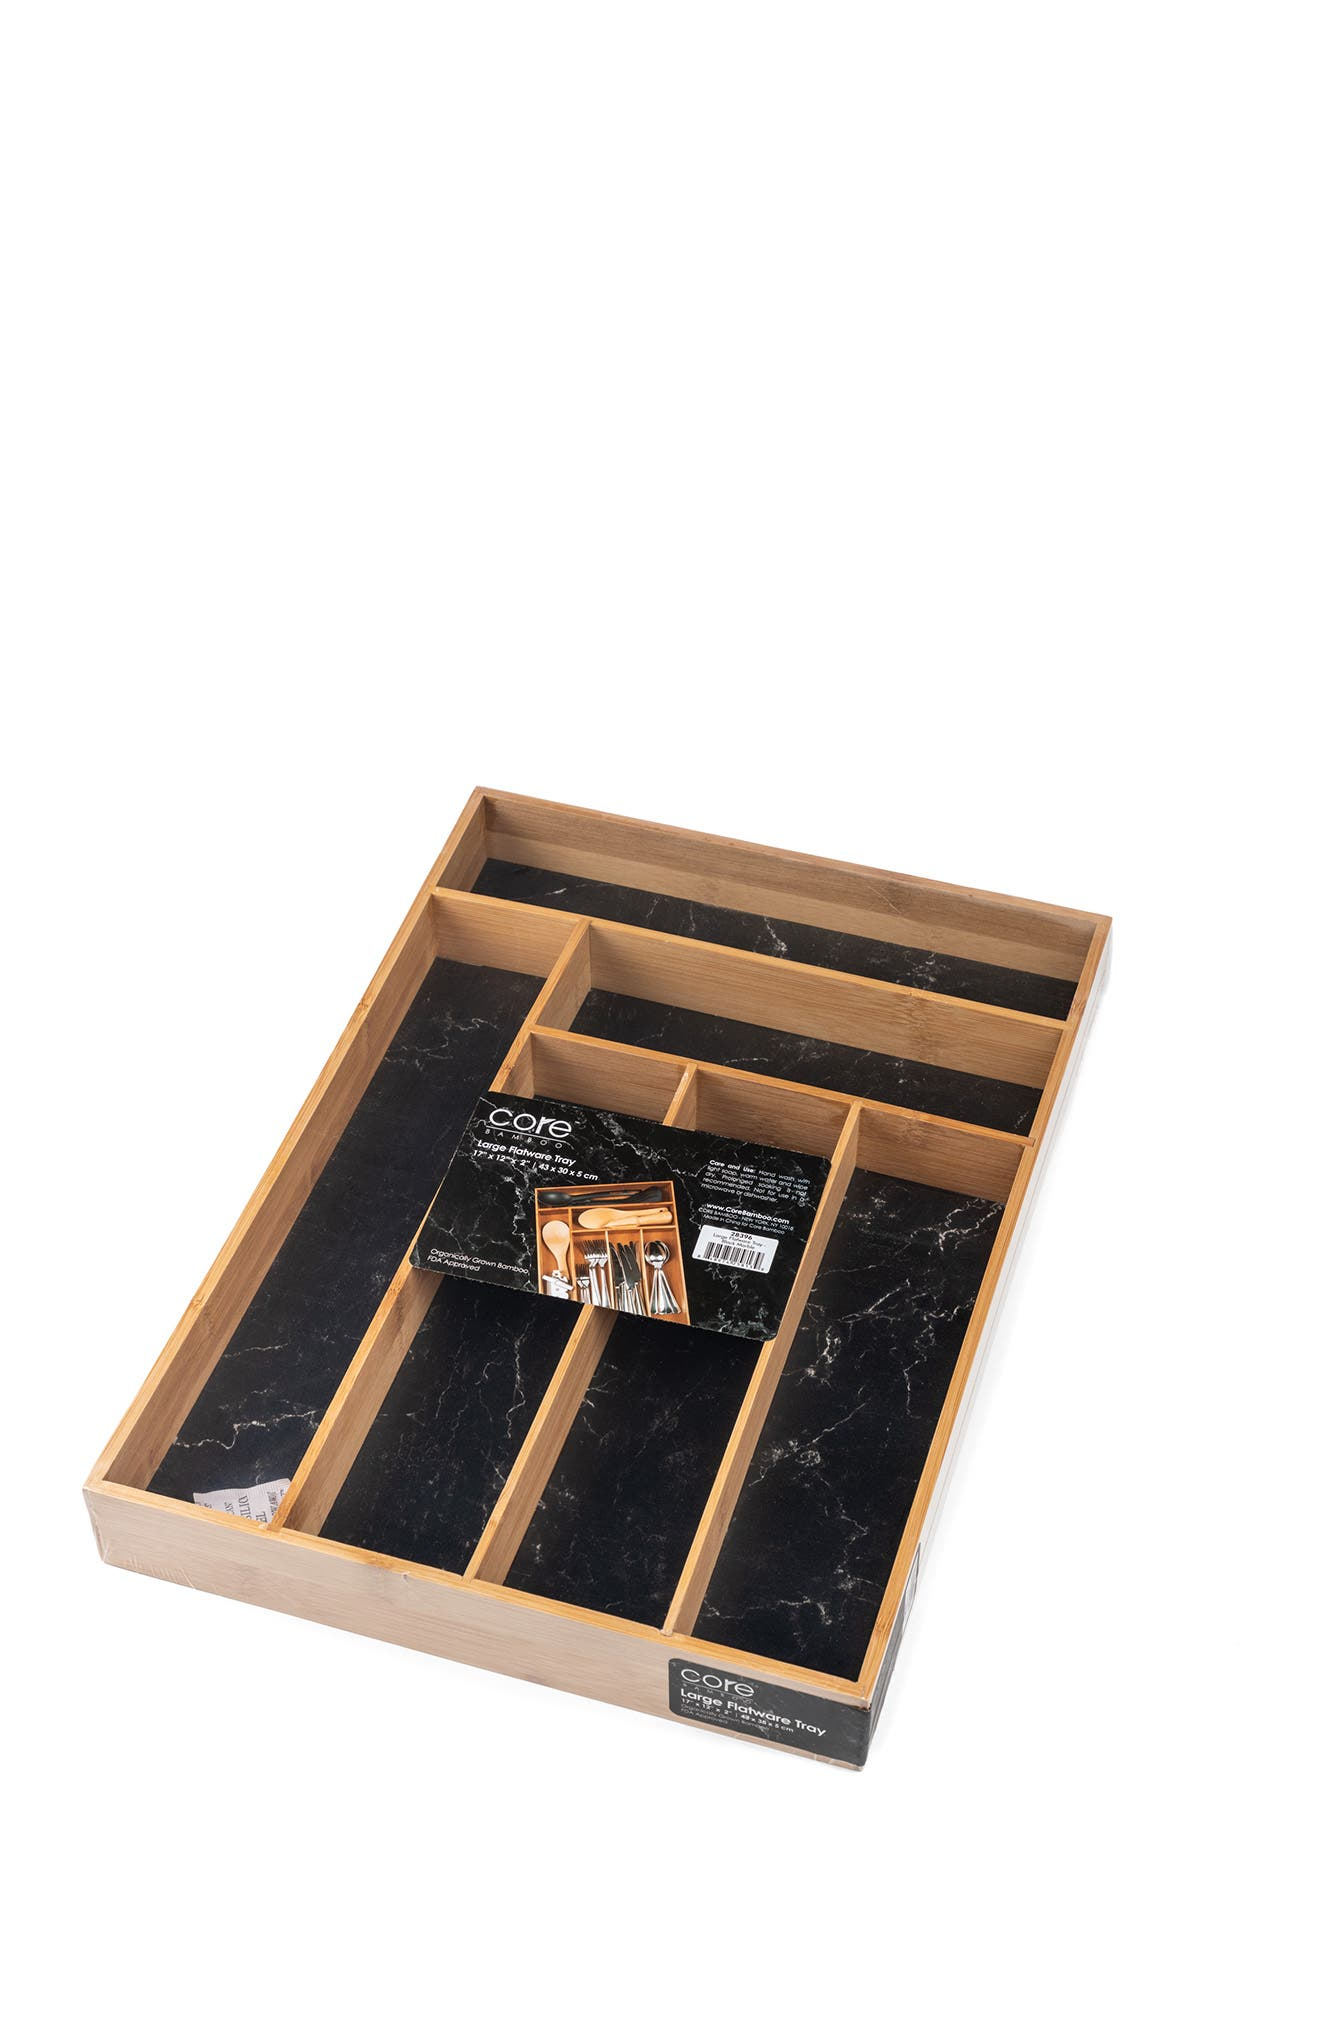 Image of Core Home Large Flatware Tray - Black